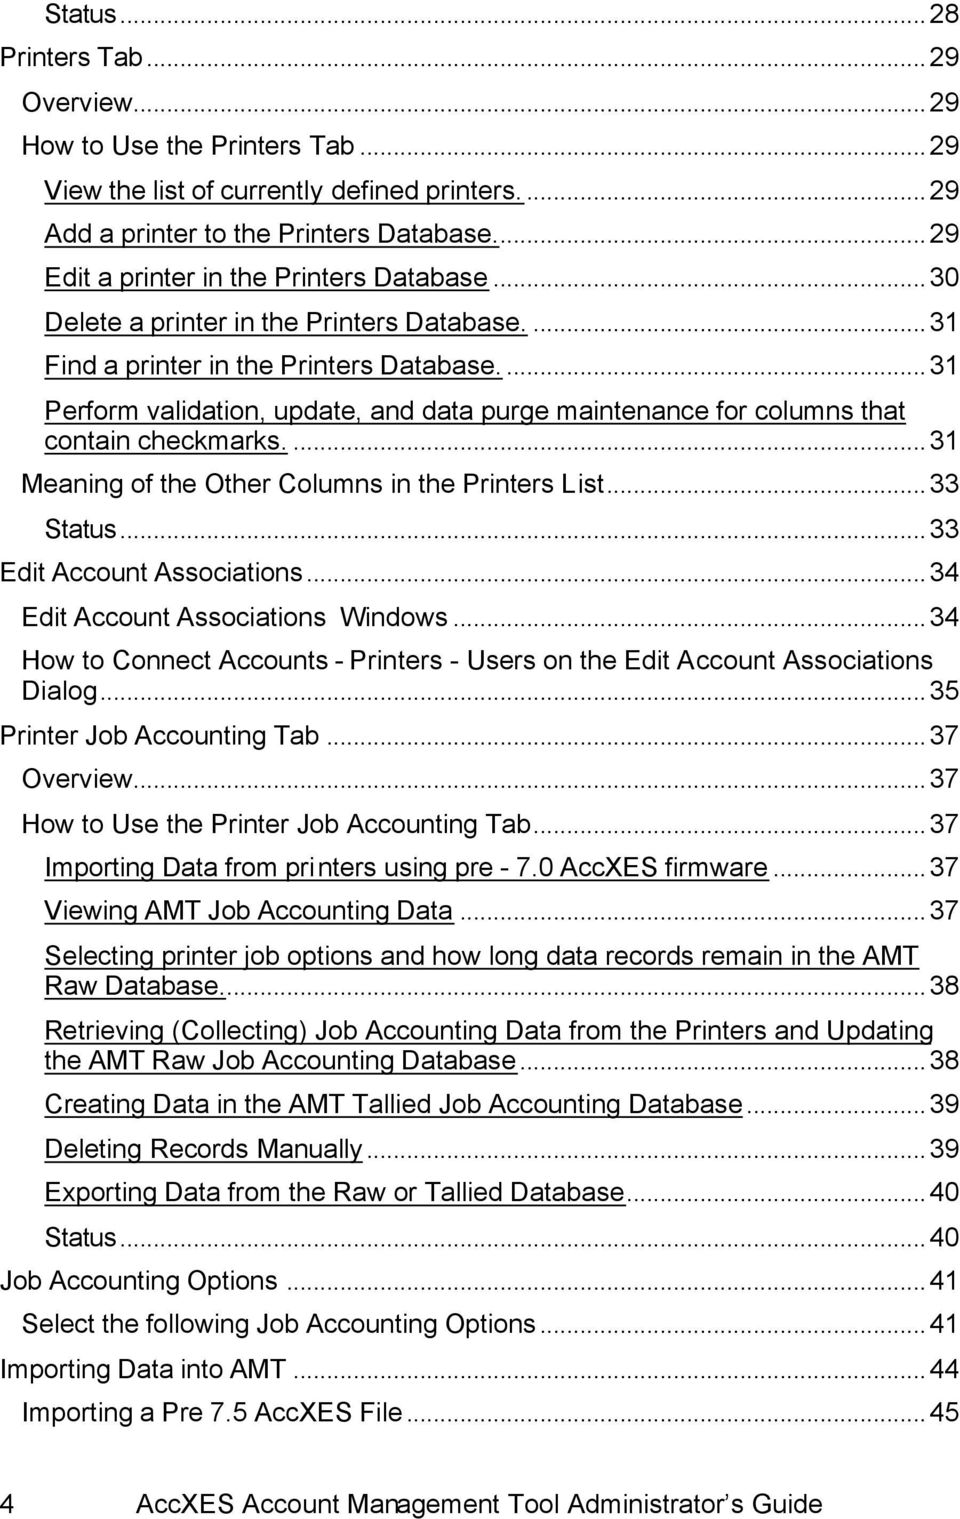 ..31 Perform validation, update, and data purge maintenance for columns that contain checkmarks....31 Meaning of the Other Columns in the Printers List...33 Status...33 Edit Account Associations.